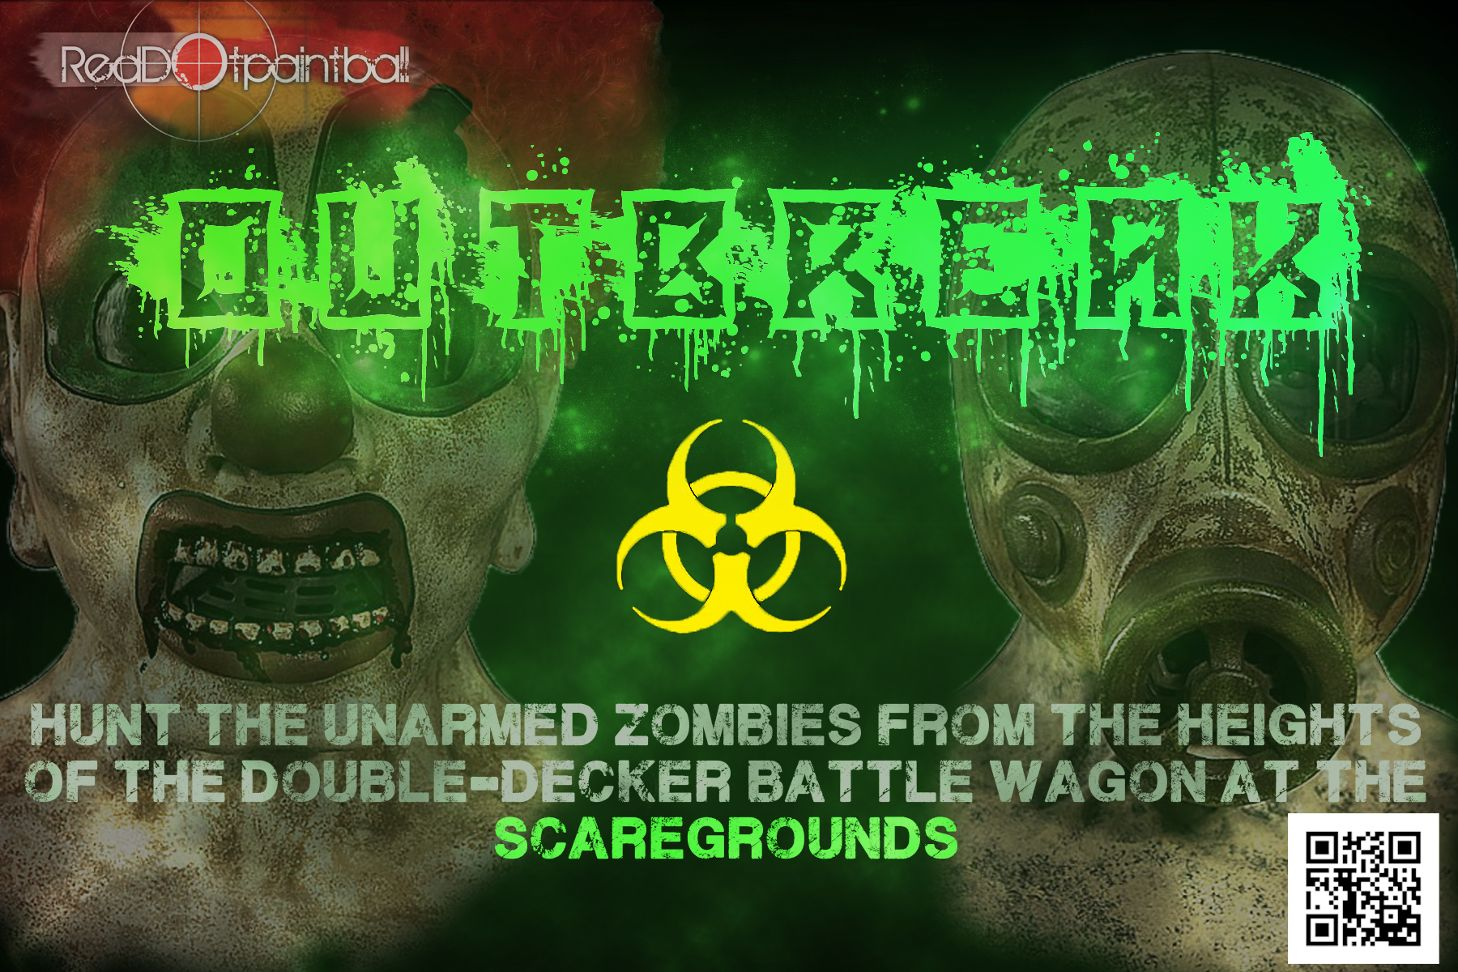 Outbreak at Scare Grounds